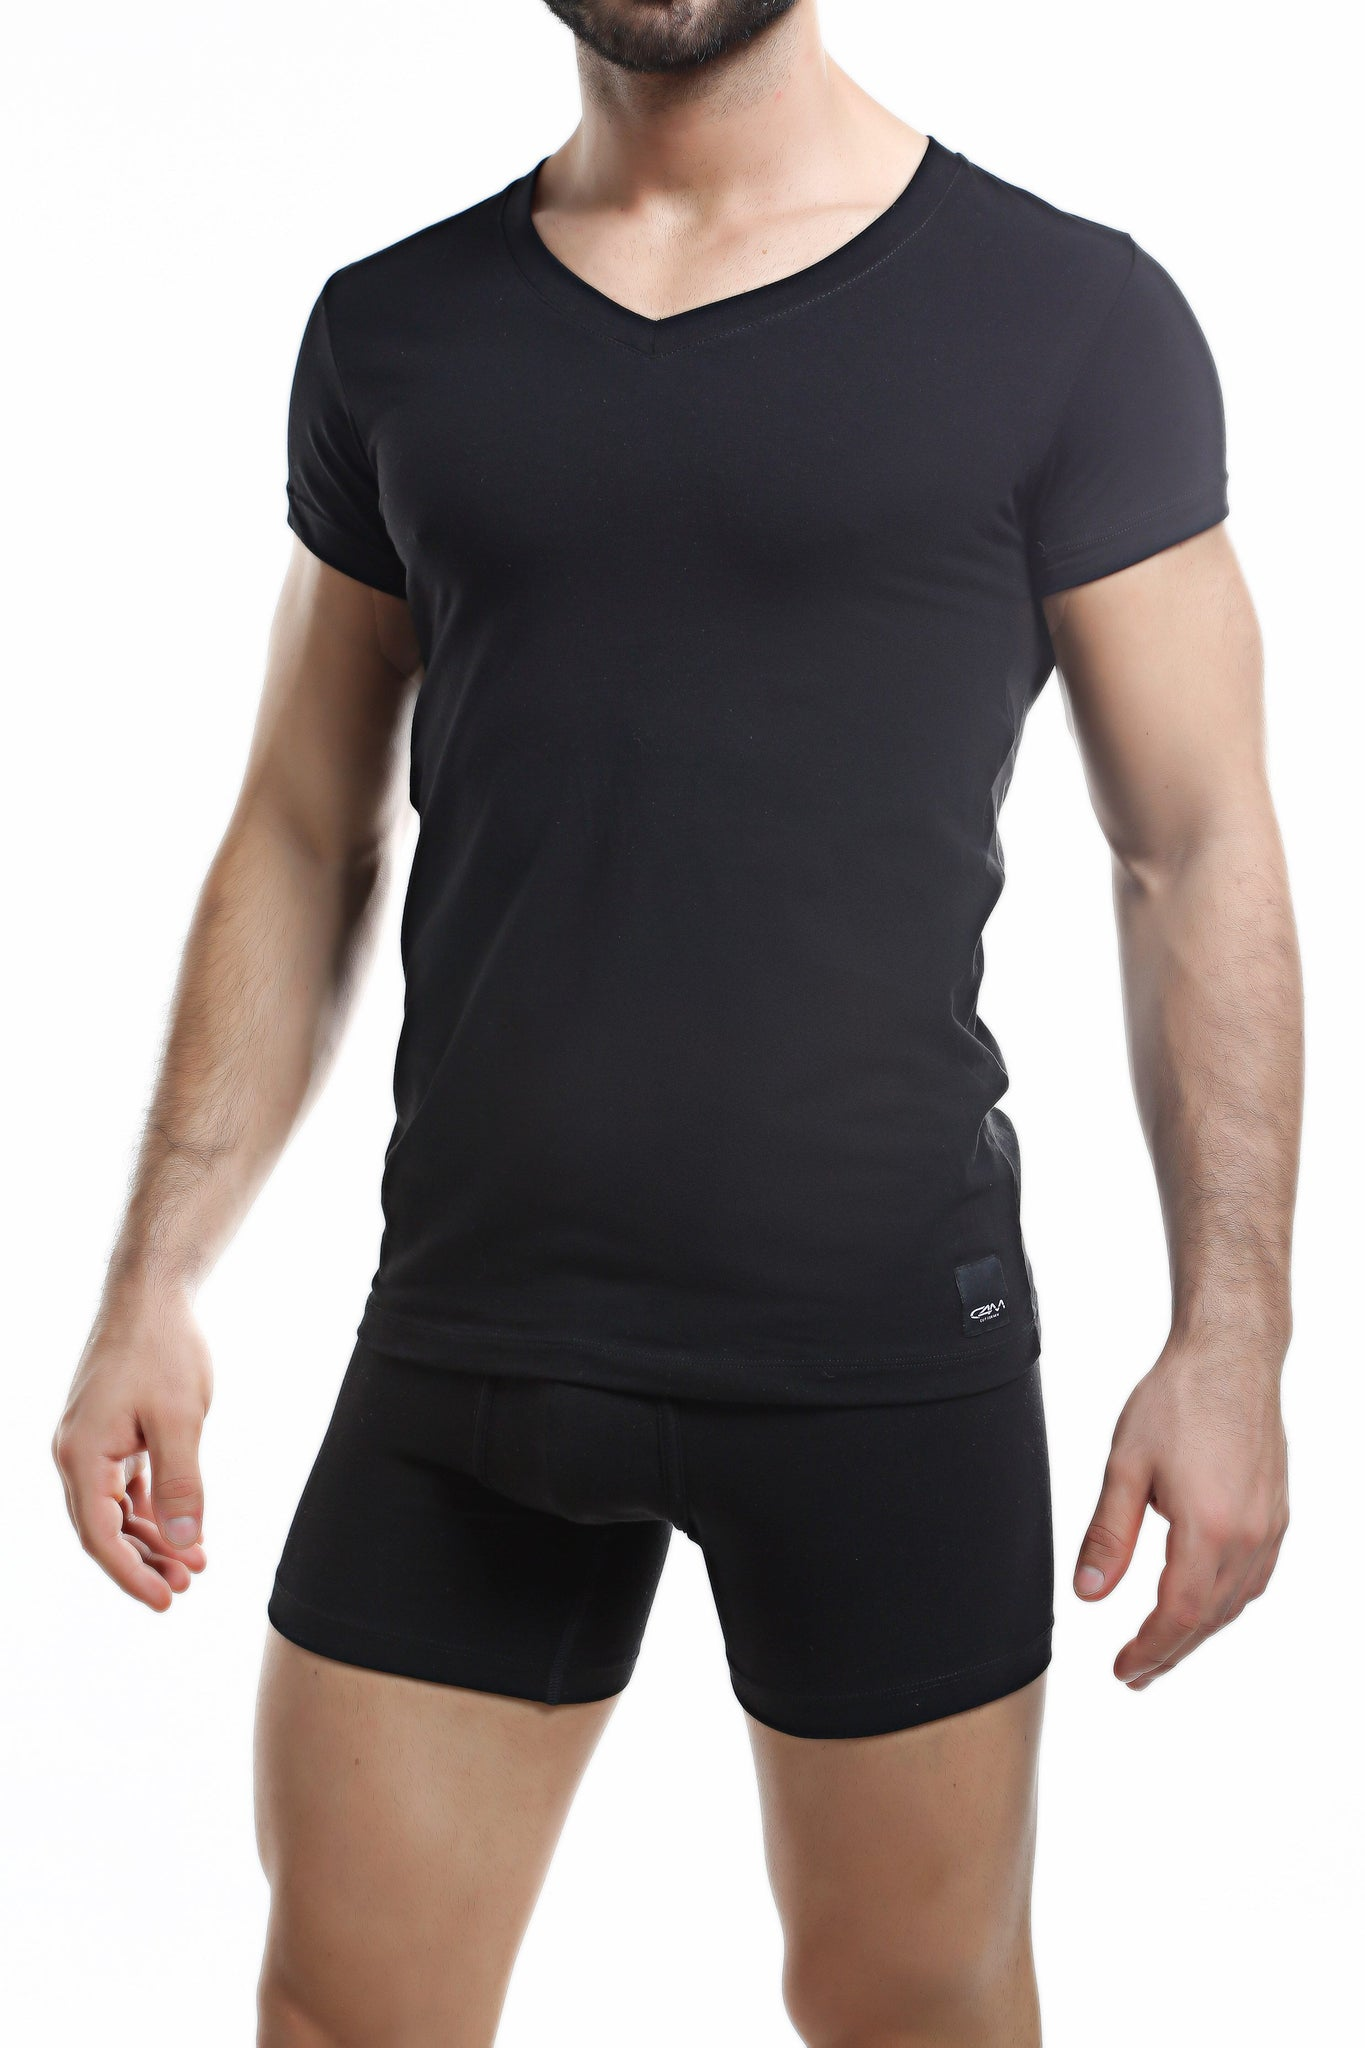 C4M Black V Neck Shirt